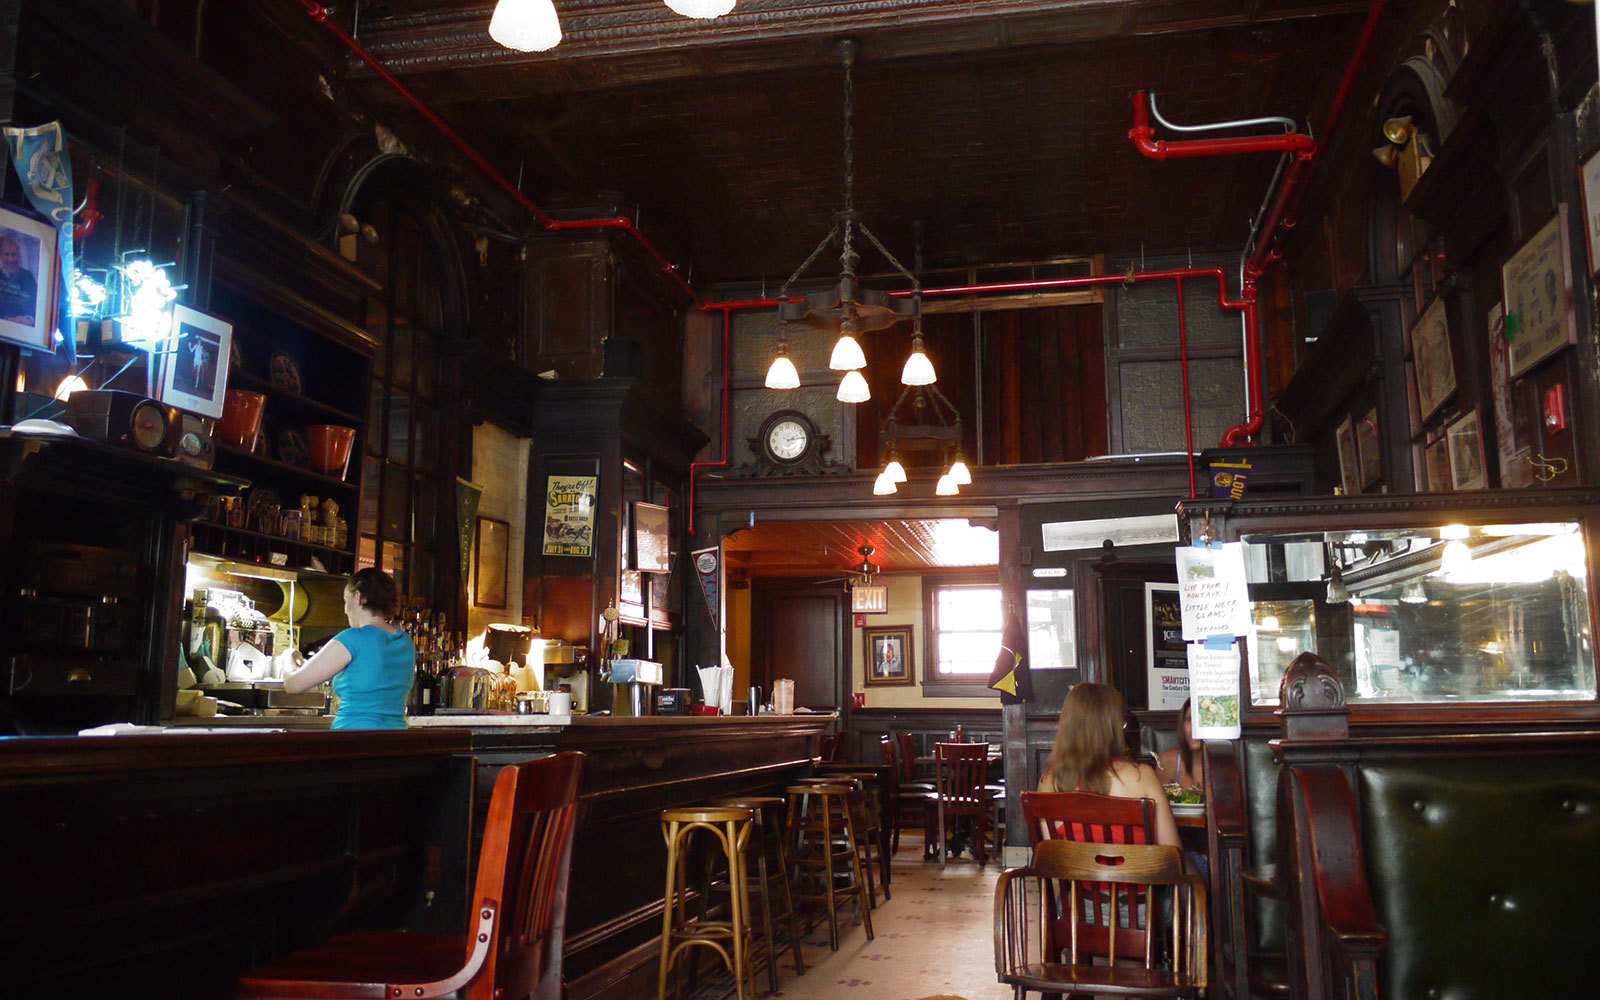 Best Old Restaurants and Bars in NYC: Old Town Bar